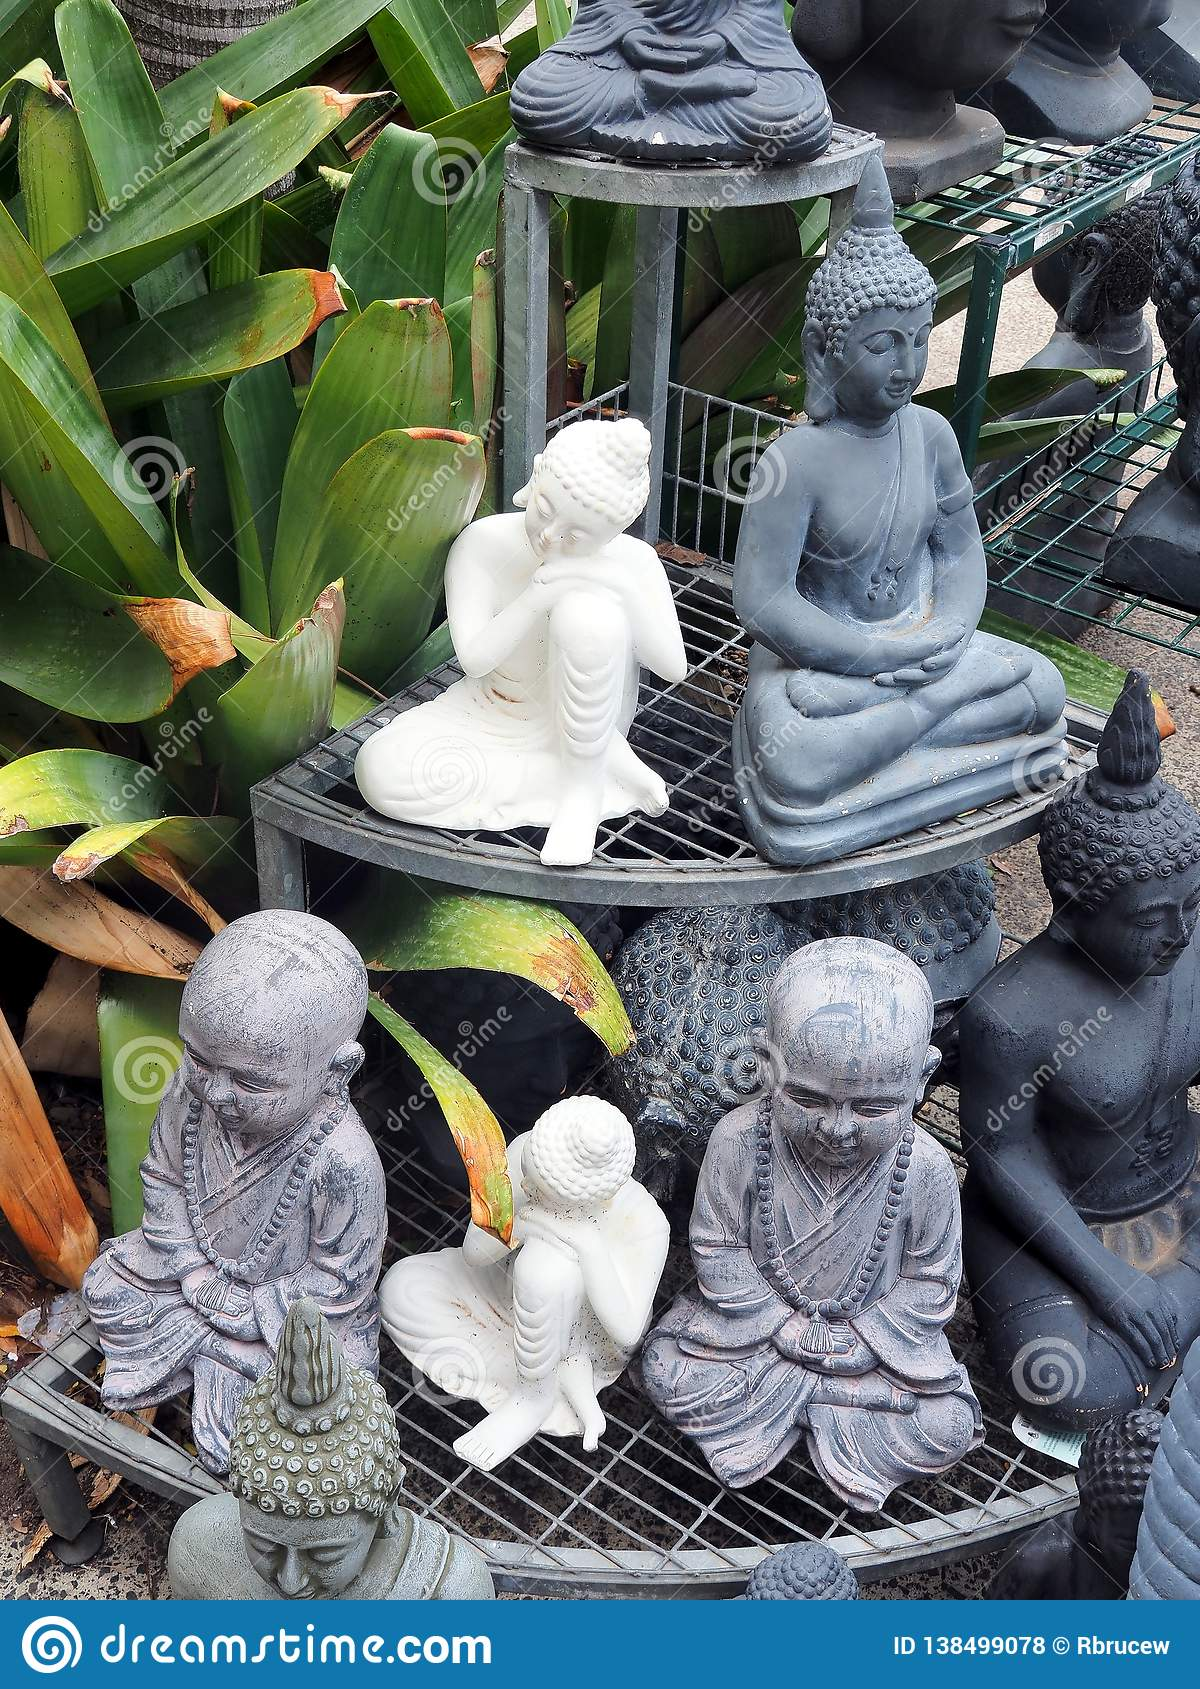 Small Buddha Sculptures At Garden Shop Stock Photo Image Of Plant Solid 138499078